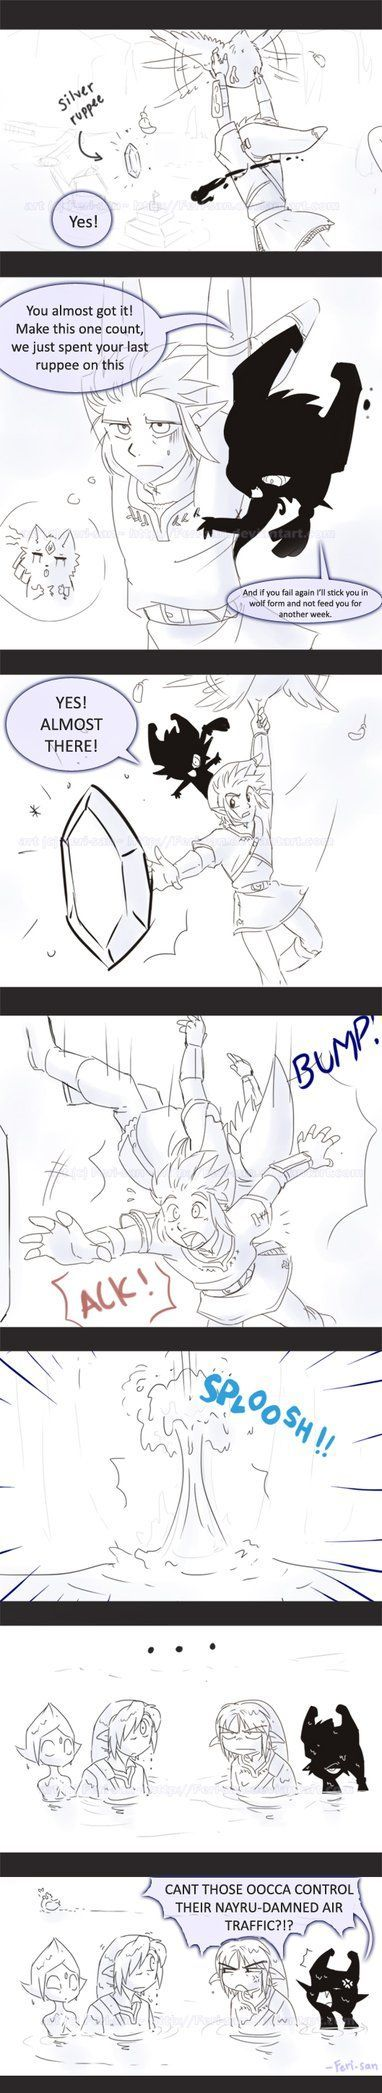 LoZ Air Traffic comic by *Ferisan For me awesome